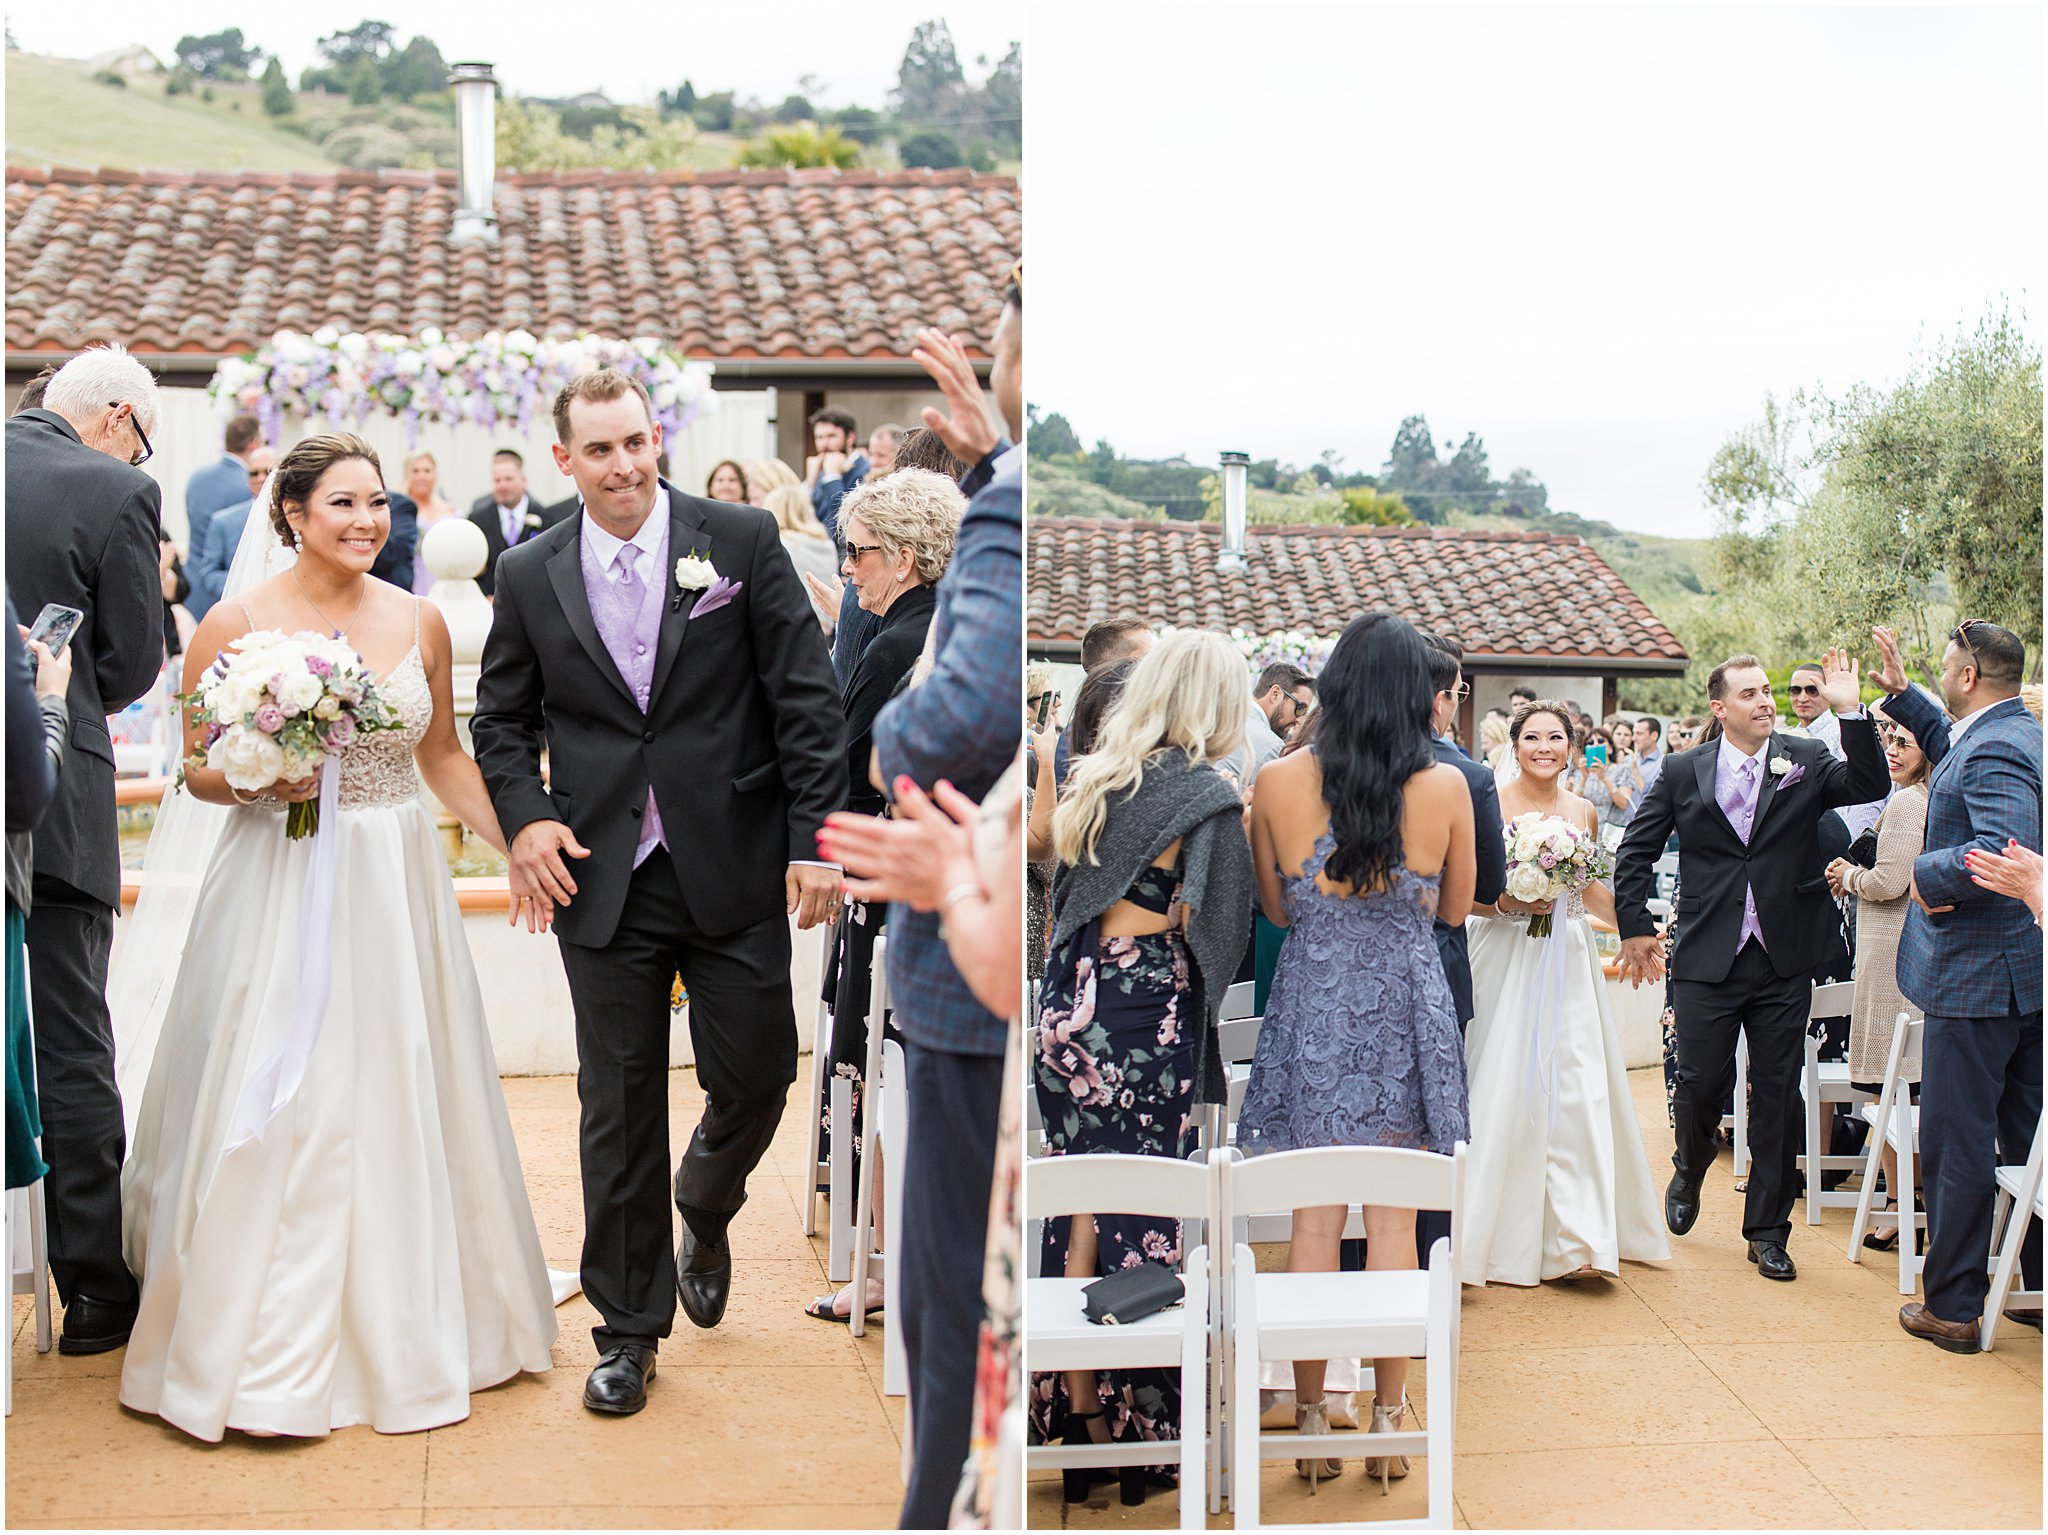 2019 wedding san juan bautista hacienda de leal vineyards bay area wedding photographer_0052.jpg